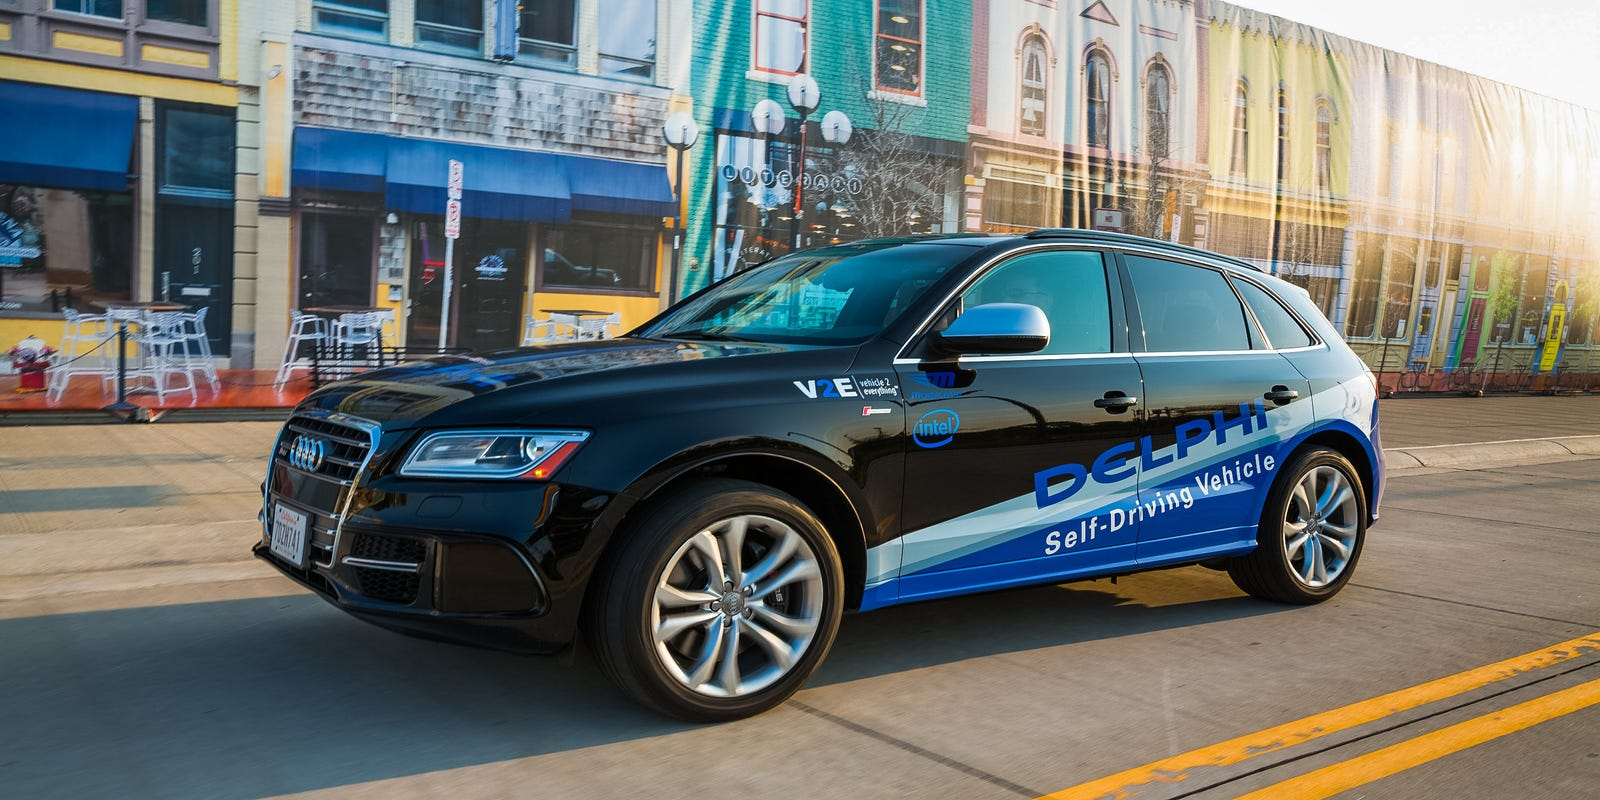 Federal regulators move to make room in safety standards for driver-less cars